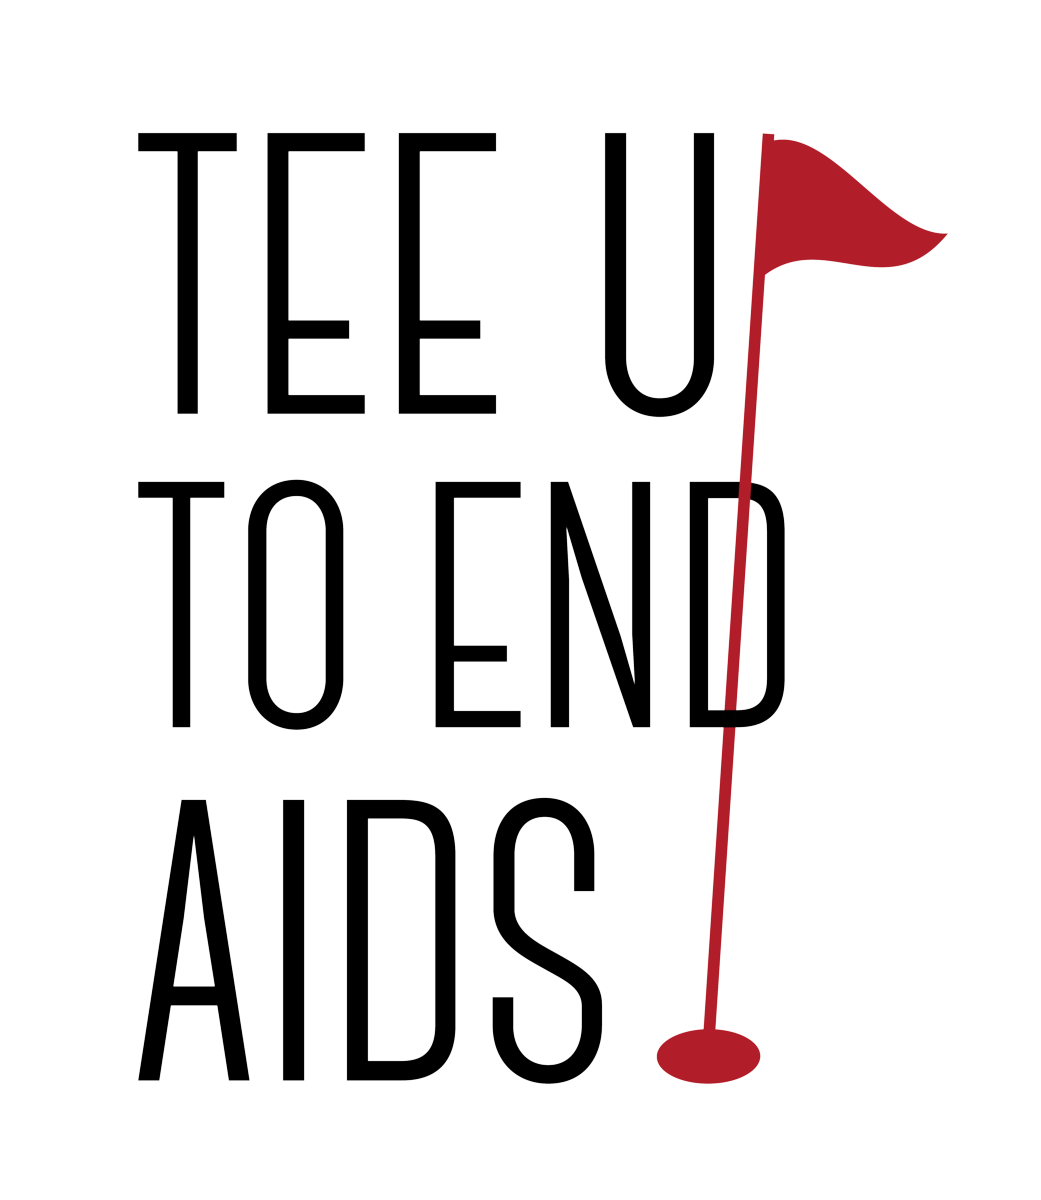 Fundraising events aids foundation. Fundraiser clipart mandatory